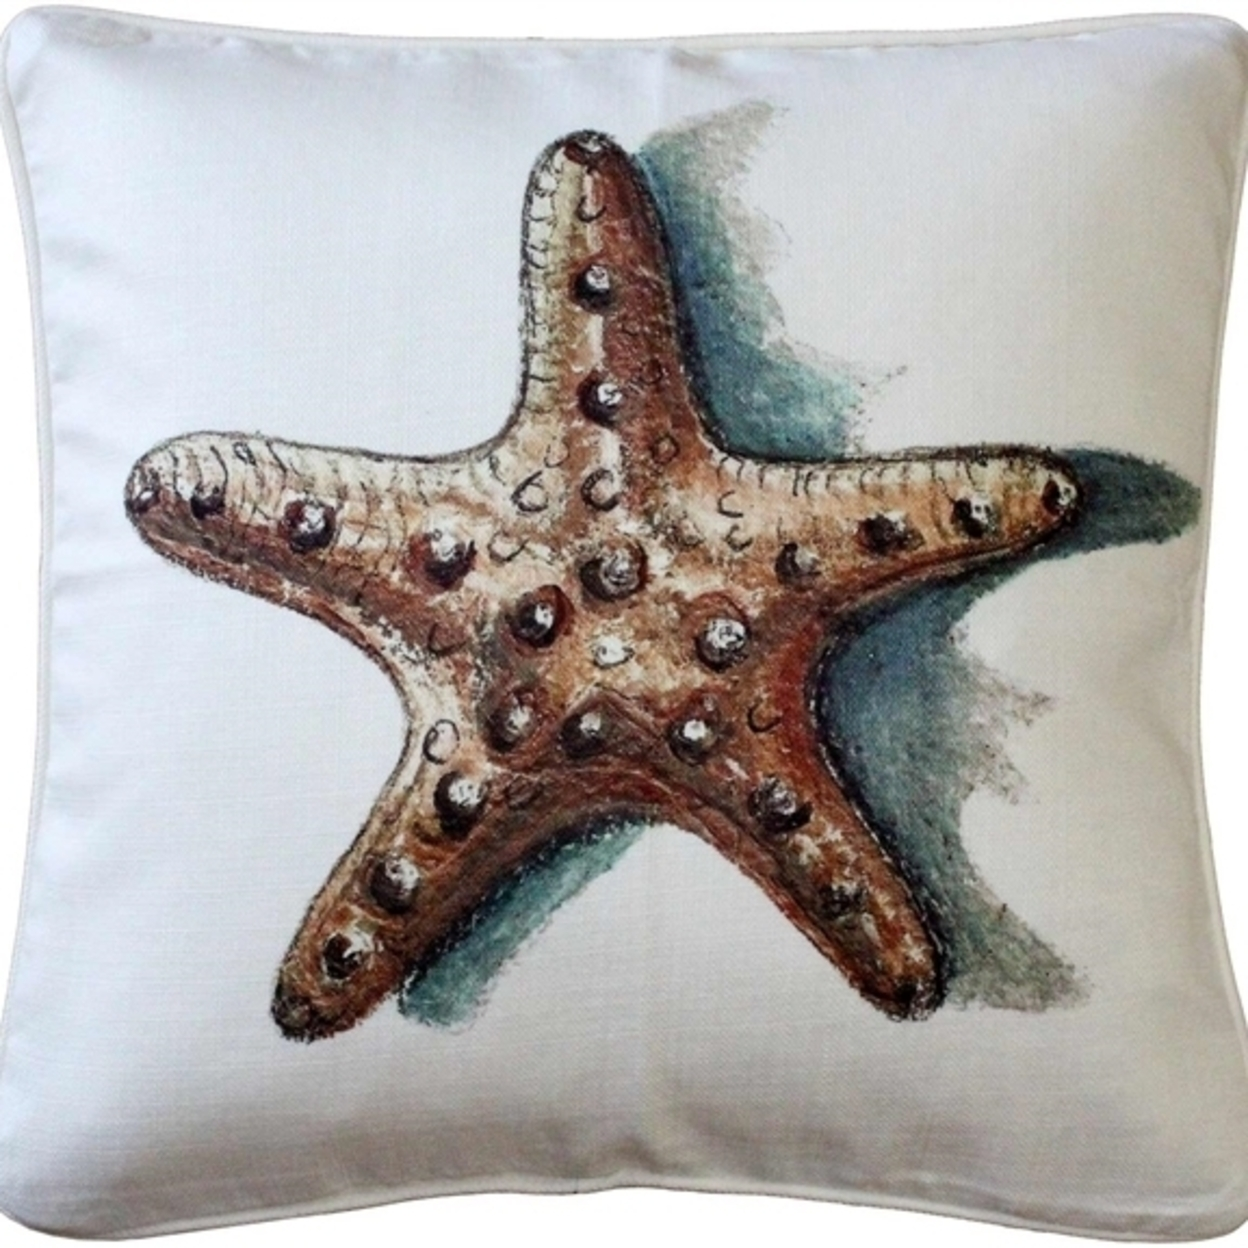 Tracy Effinger - Ponte Vedra Star Fish Throw Pillow 20x20 55b6d0aea2771cde5d8b4a5c